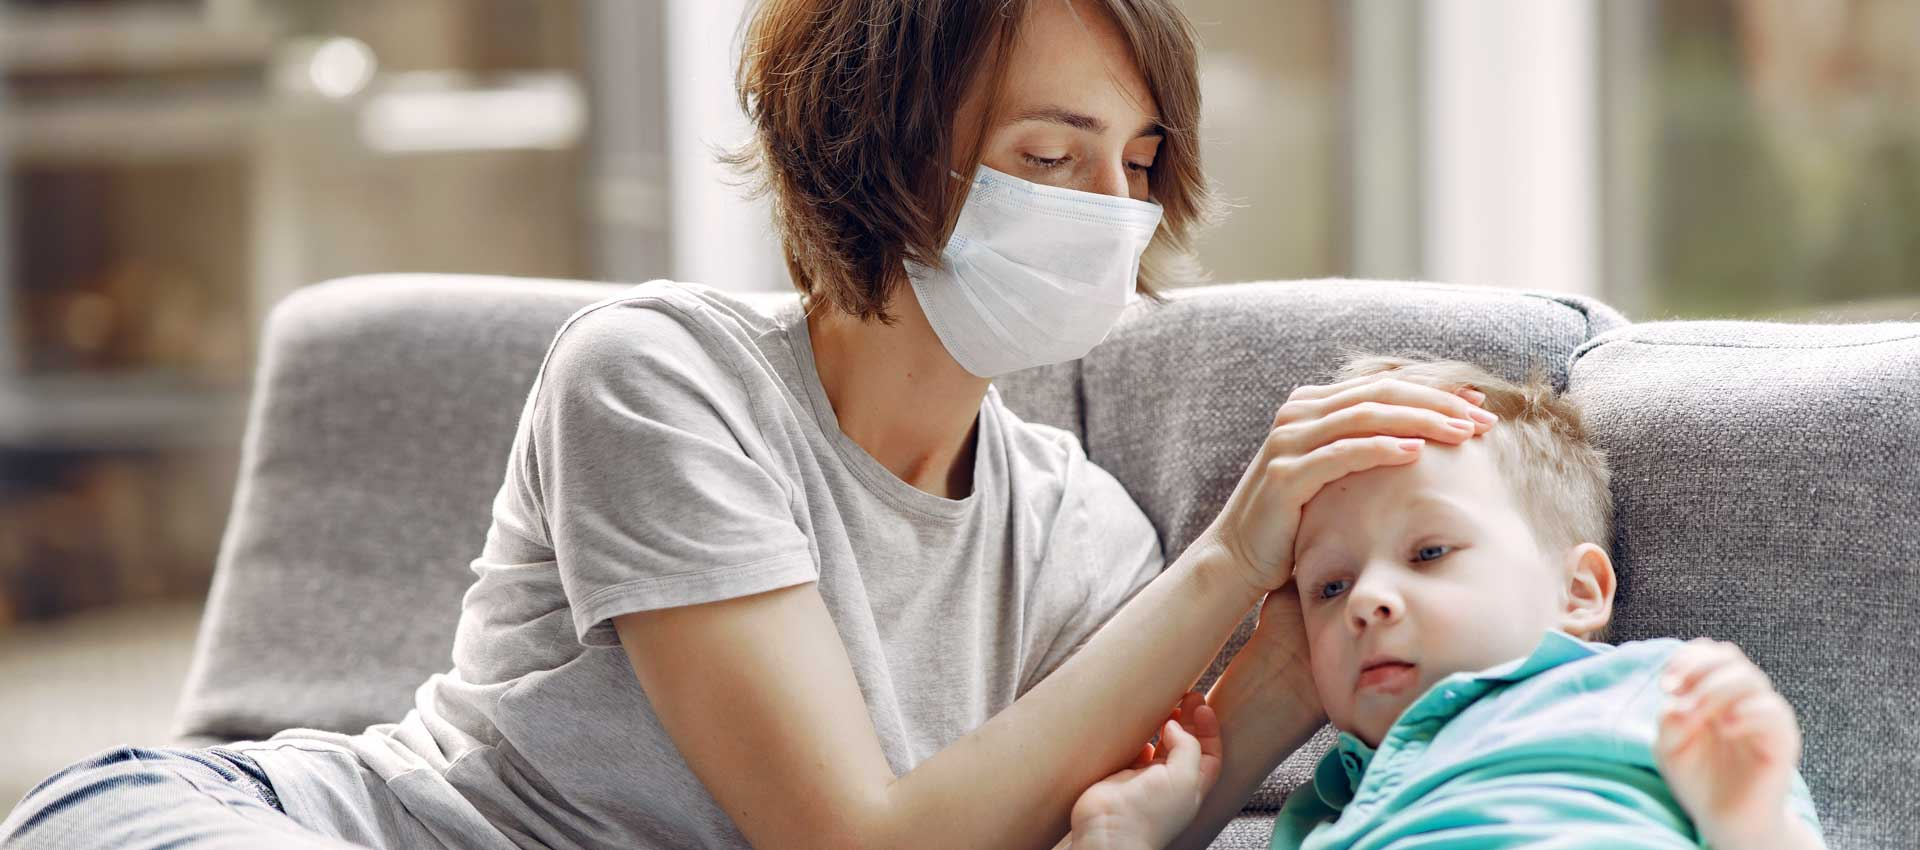 The Surge in Domestic Air Purification Systems Following Coronavirus